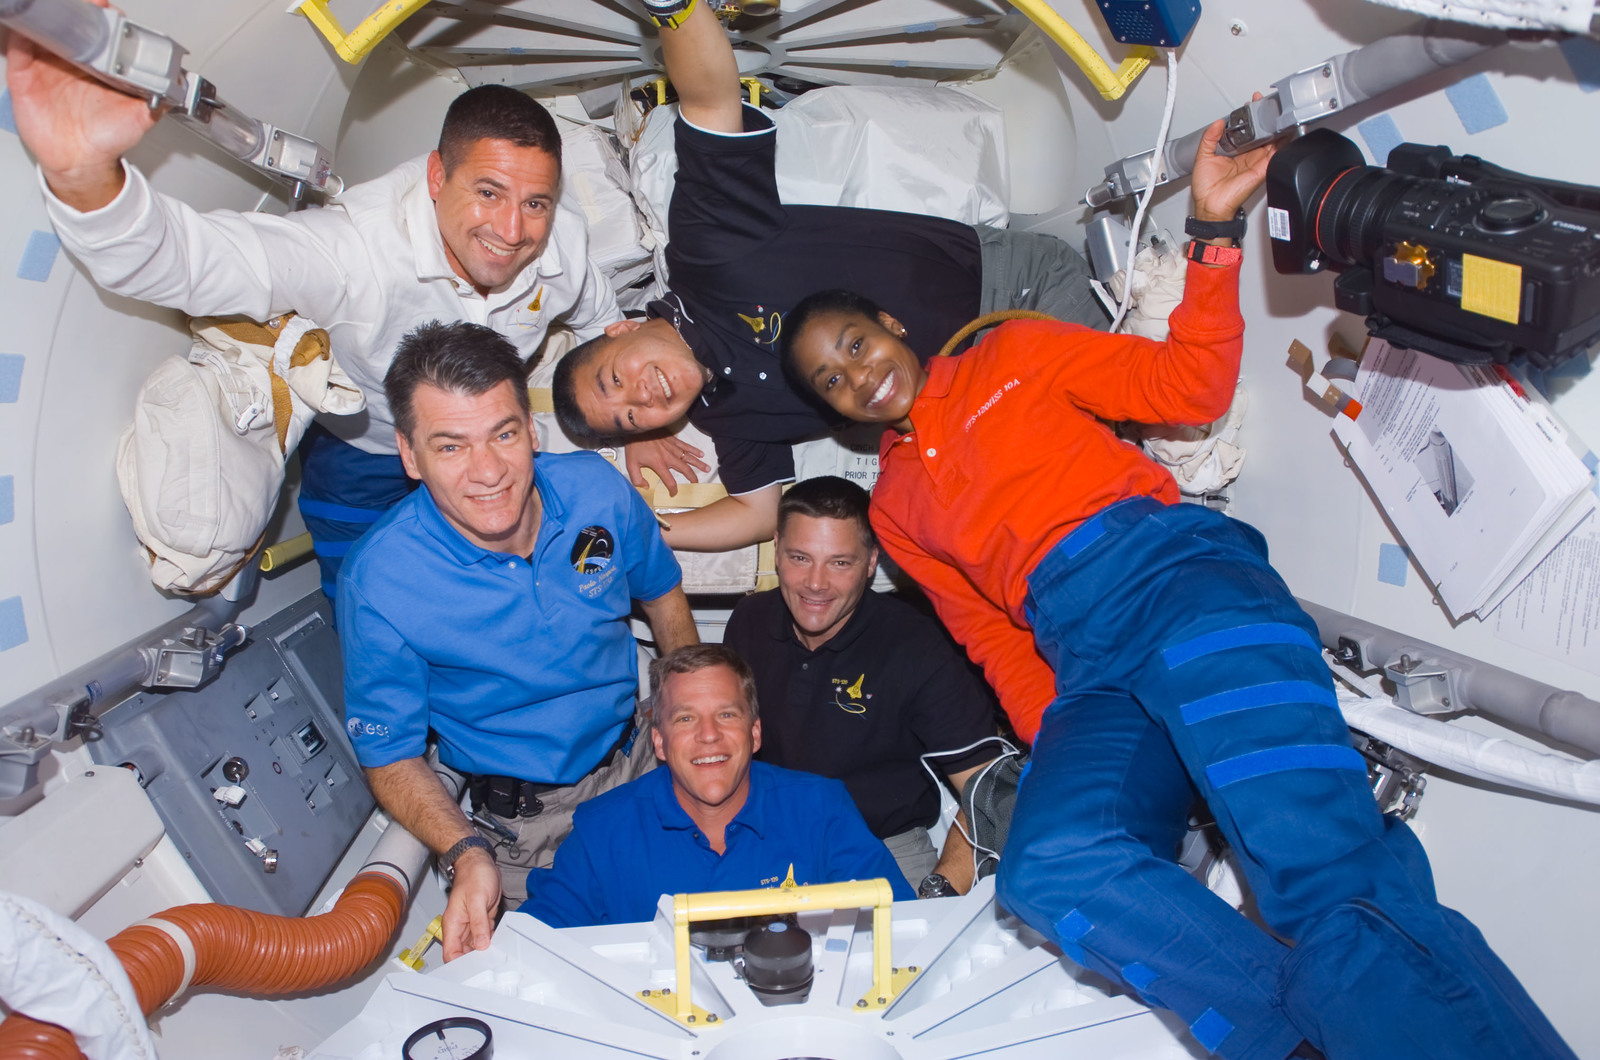 S120E006402 - STS-120 - STS-120 crew in the Orbiter Docking Compartment (ODC)